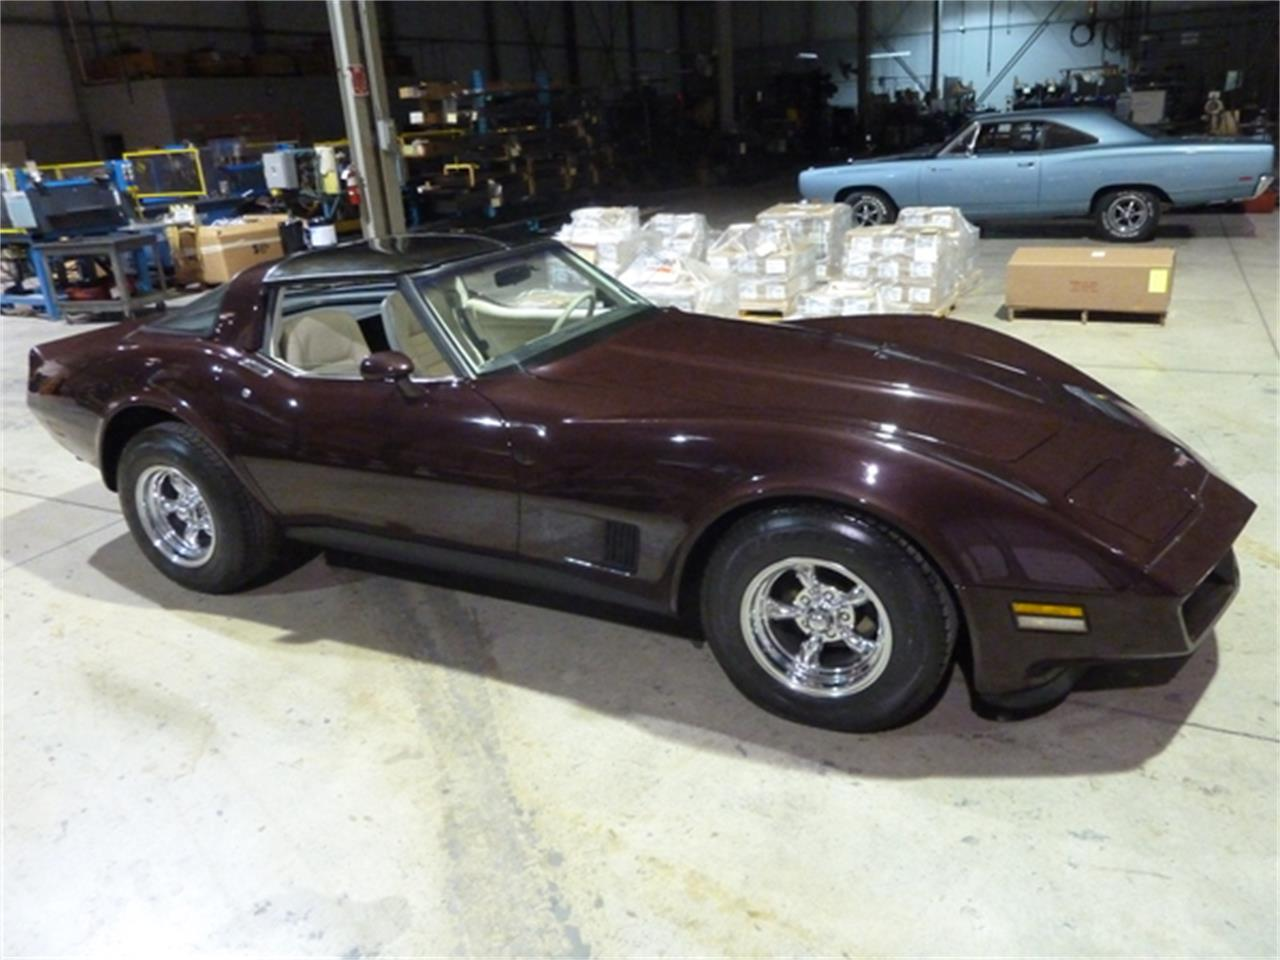 Large Picture of 1980 Chevrolet Corvette located in Fort Myers/ Macomb, MI Florida - $19,900.00 - J312